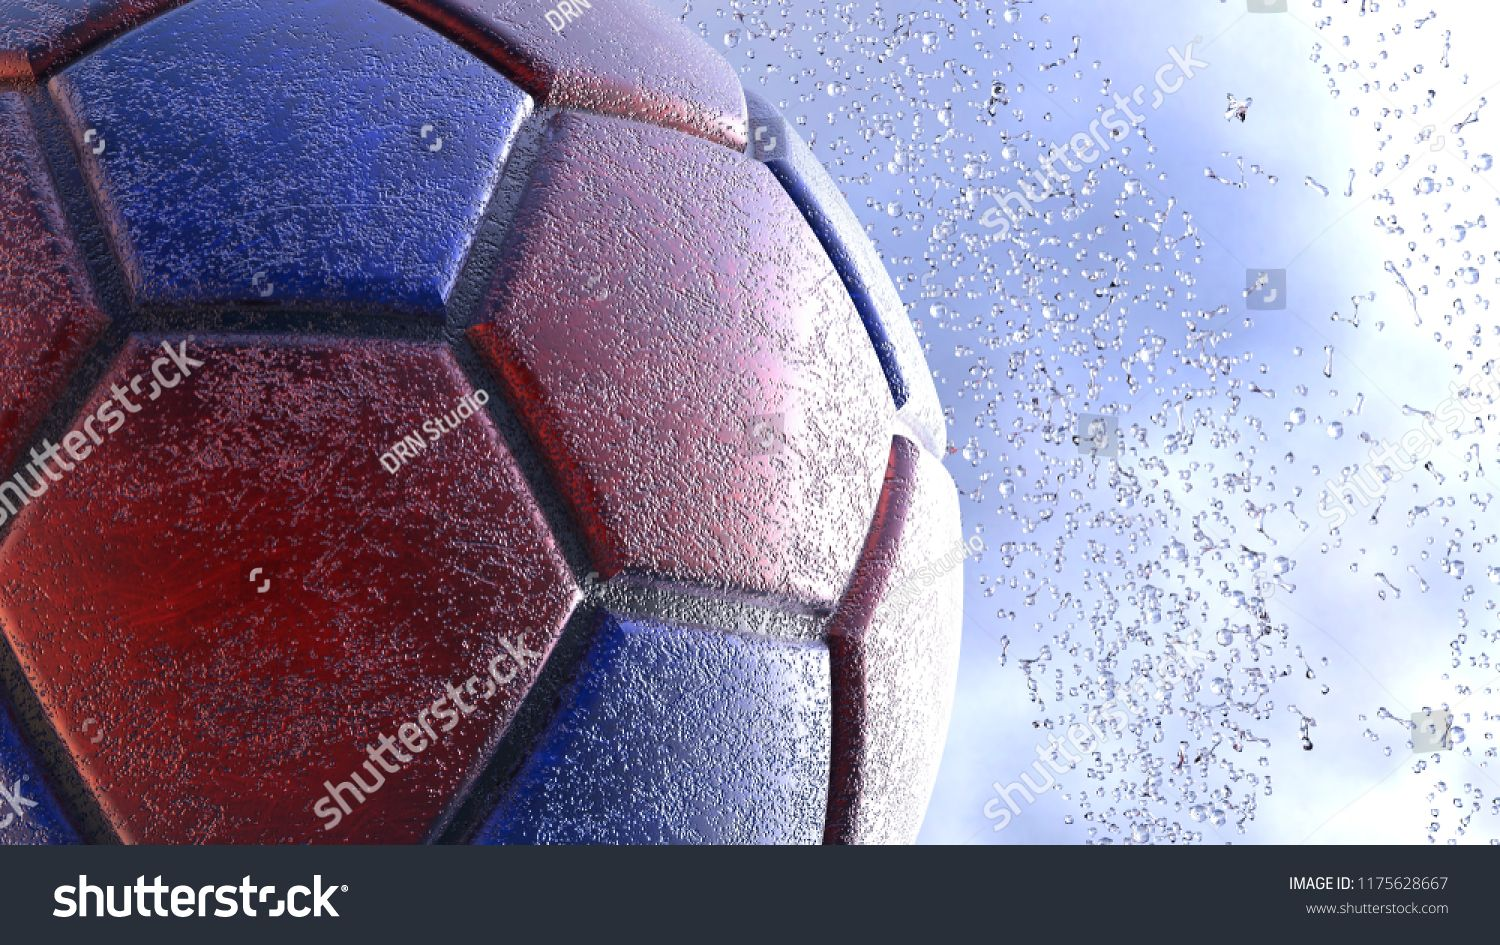 Download Rusty Metallic Blue Red Soccer Ball With Water Splash 3d Illustration 3d High Quality Rendering Ad Sponsored R Metallic Blue Soccer Ball Photo Editing